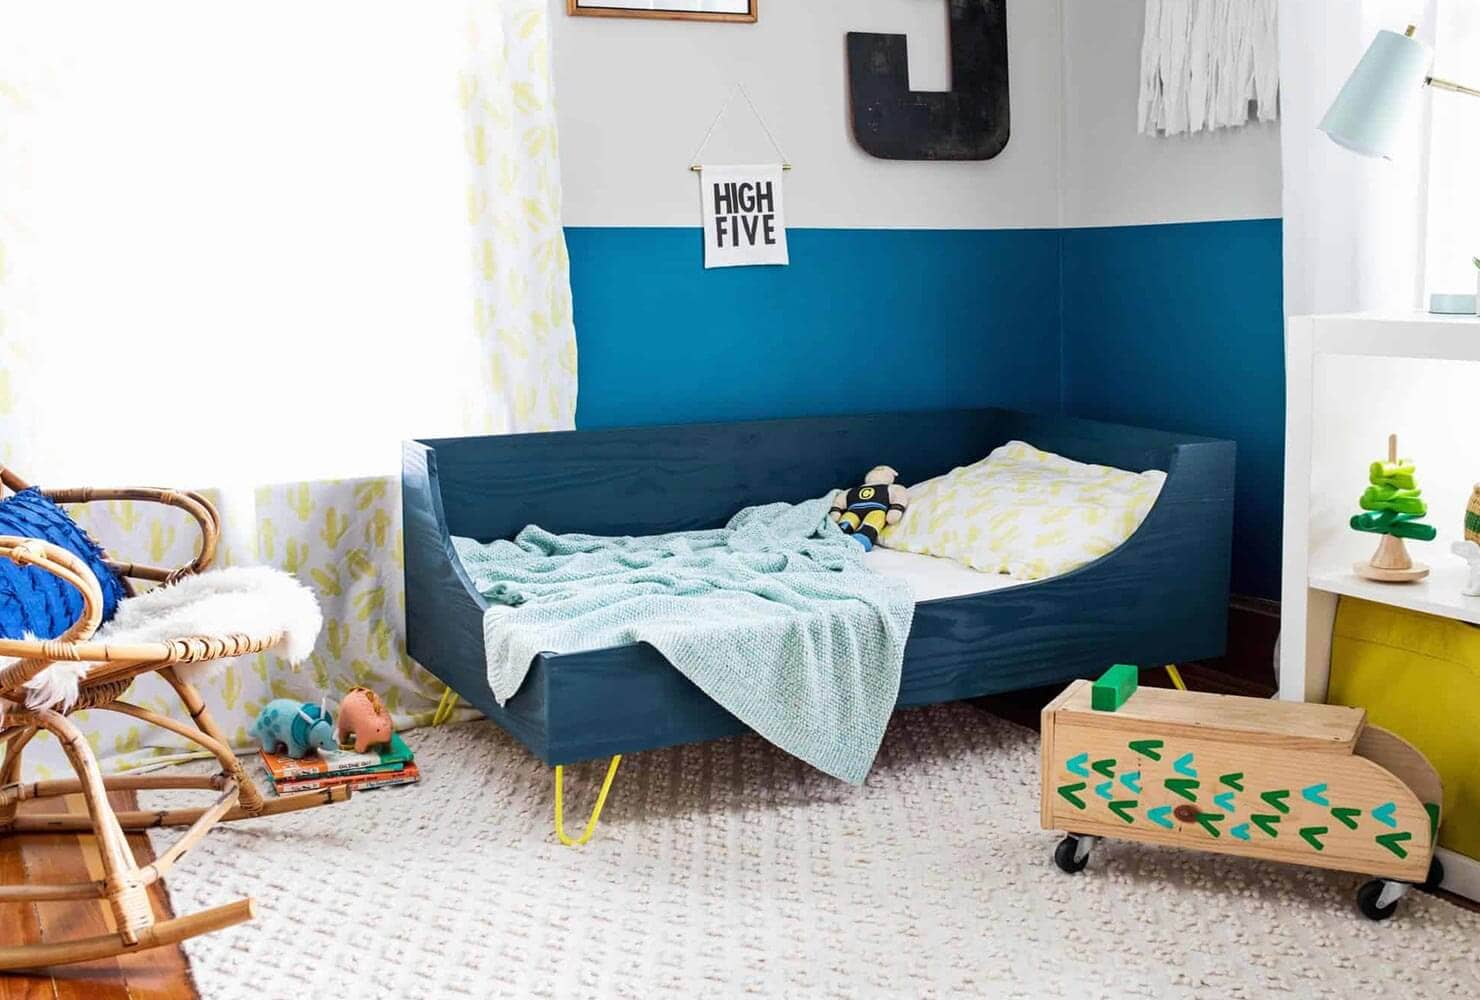 8.Simphome.com Modern Toddler Bedroom 1